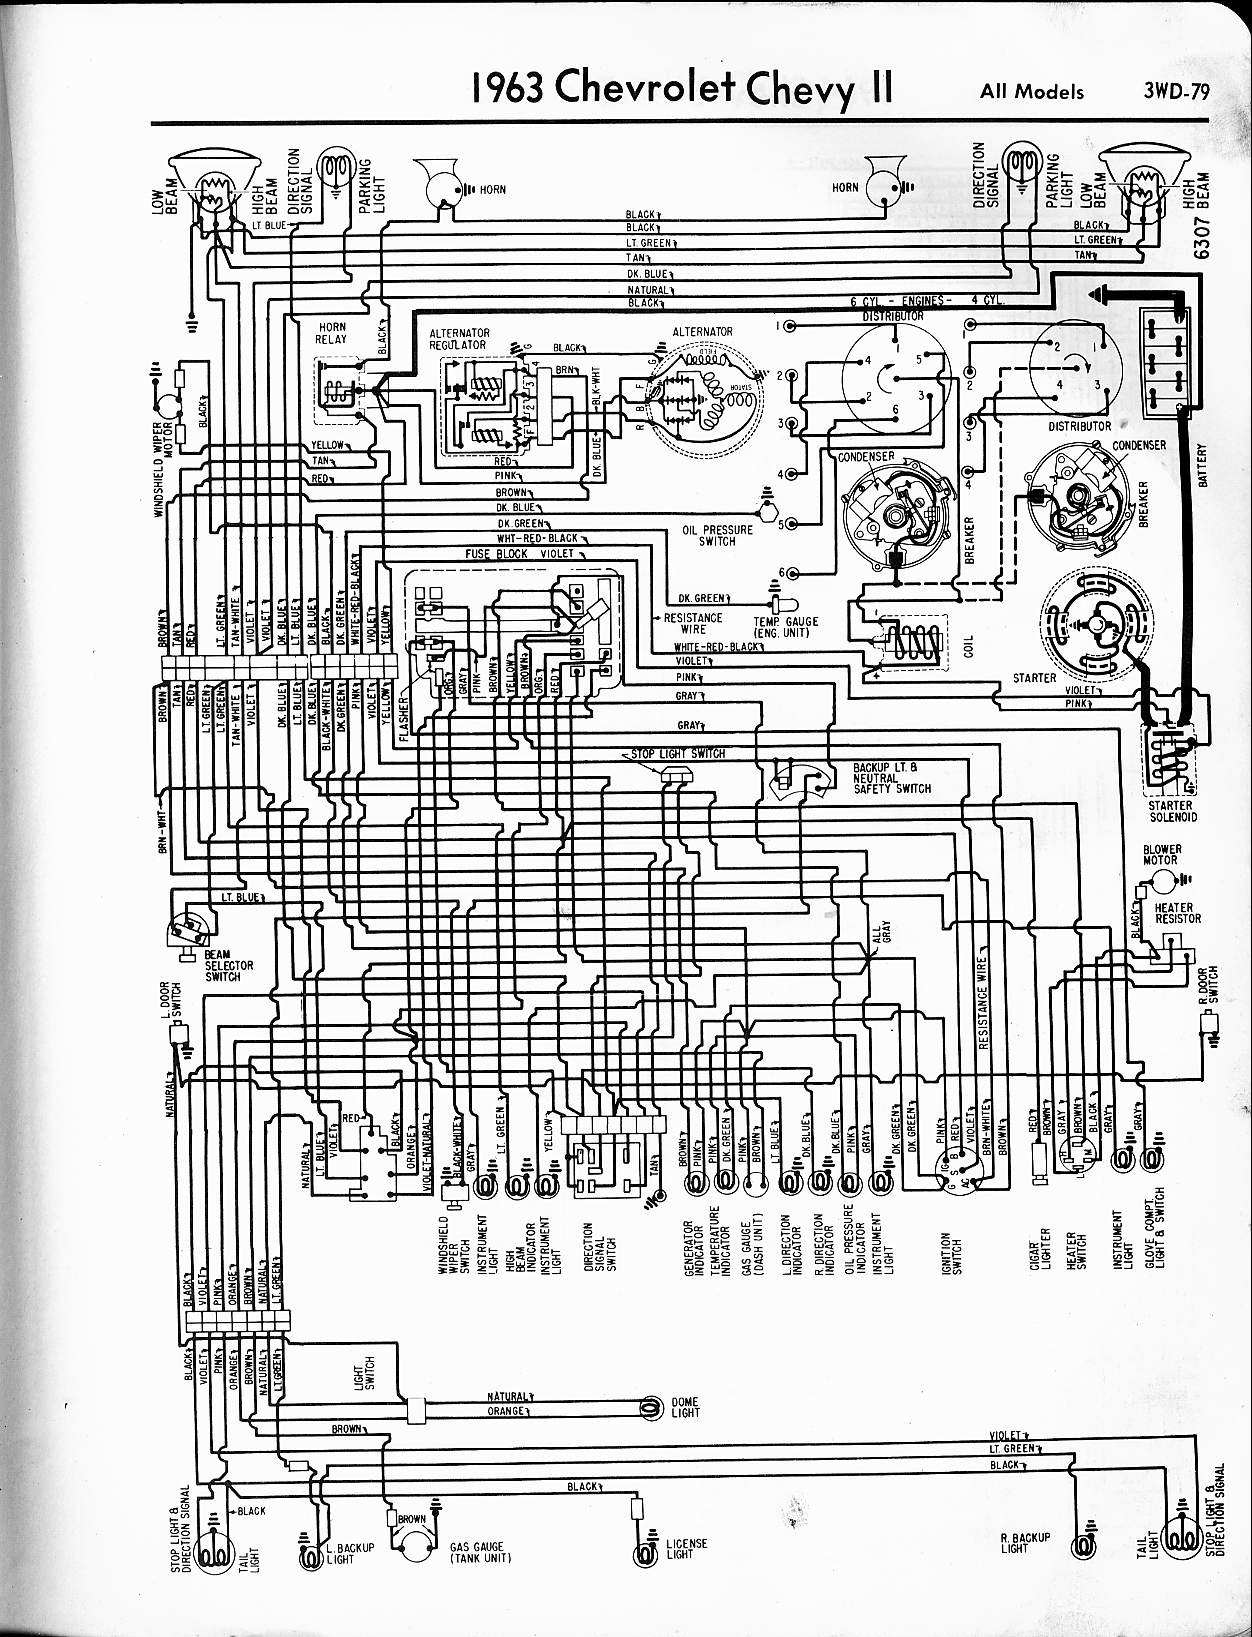 63 Corvette Wiring Diagram Opinions About 57 Vw Harness Installation 65 Chevy Diagrams Rh Oldcarmanualproject Com 1963 Wiper Ignition